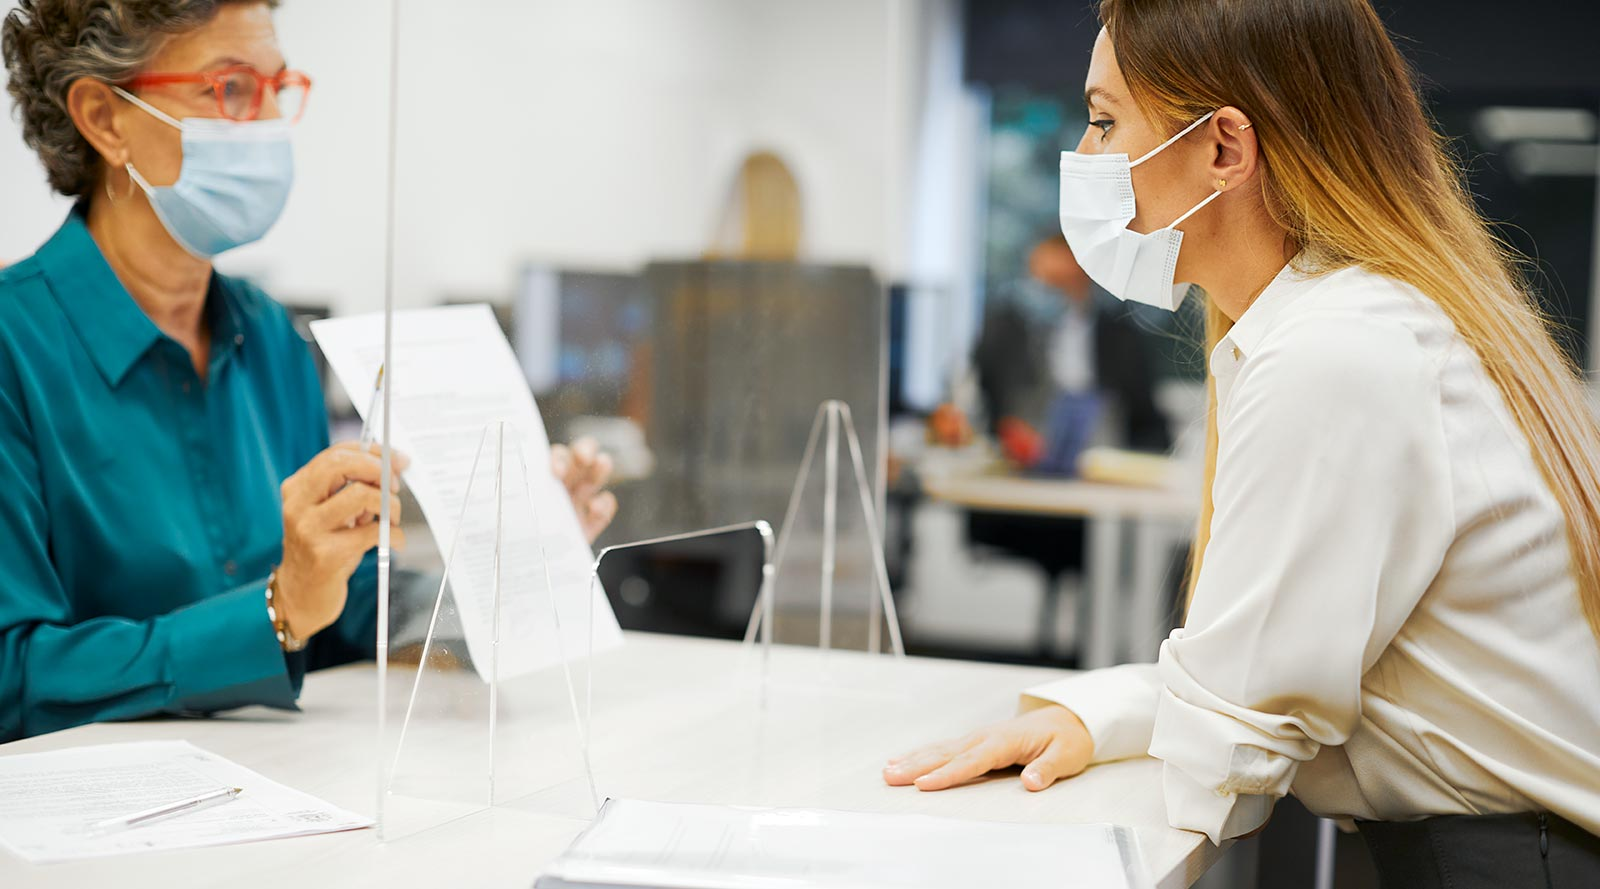 Woman checking a customer's vaccination receipt